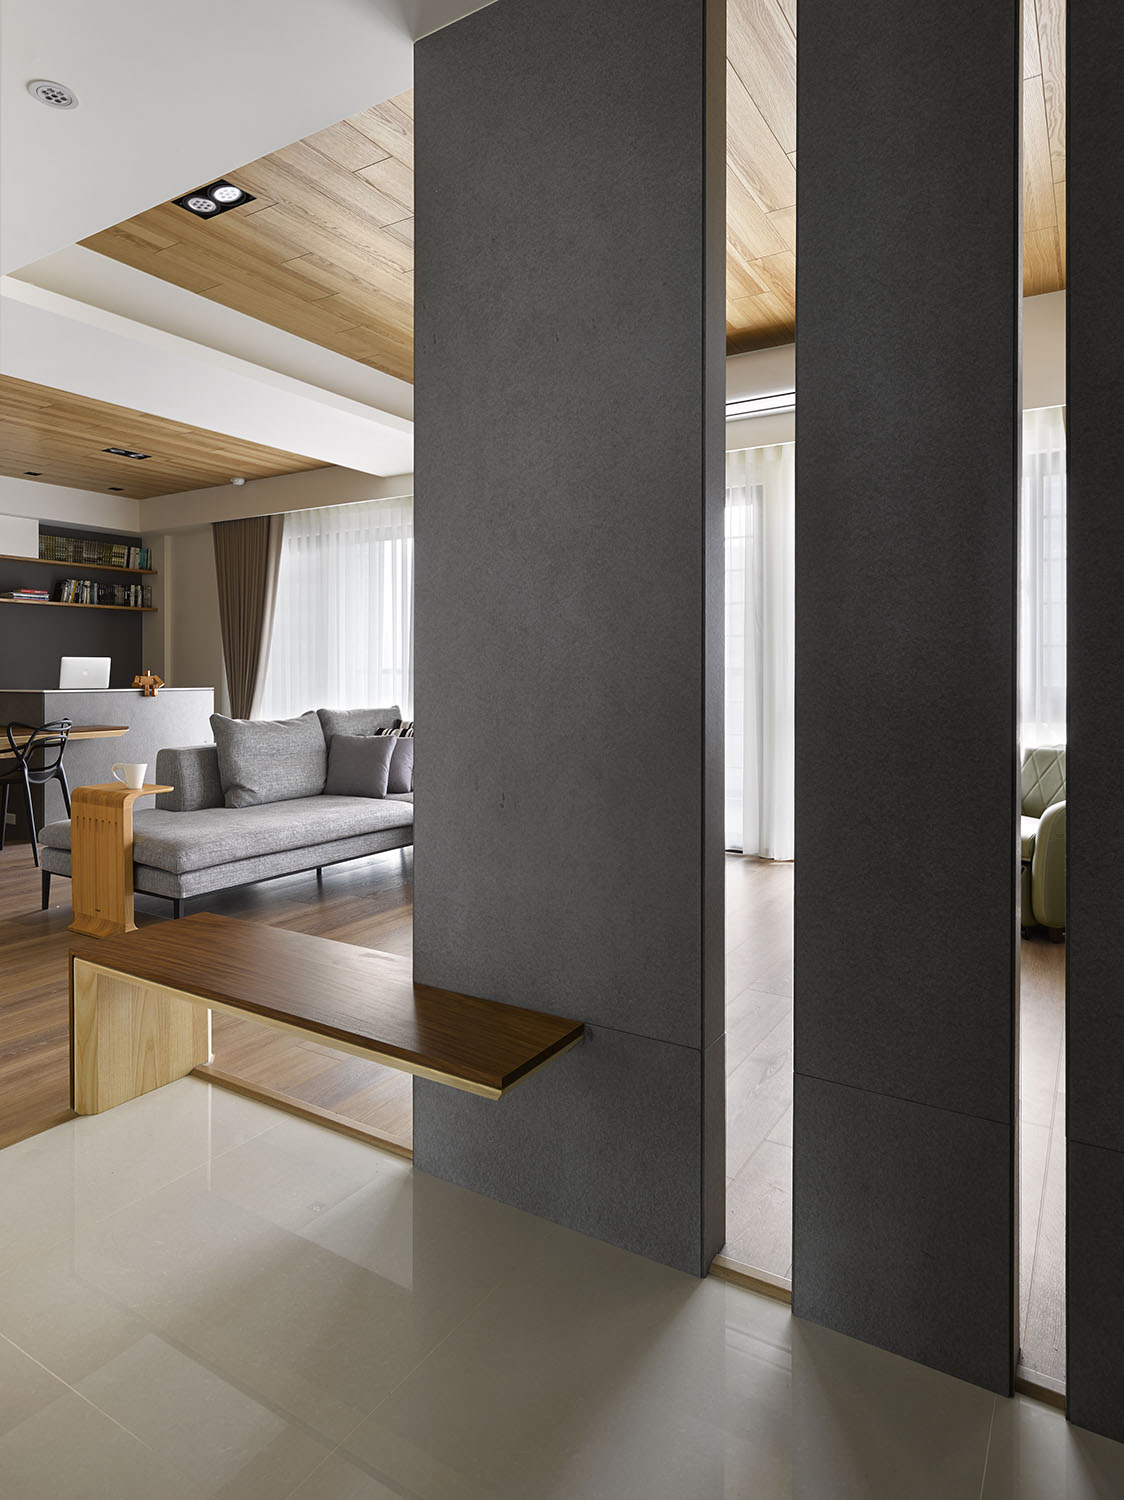 Liu's Warm Wooden Apartment in New Taipei City by HOYA Design-01